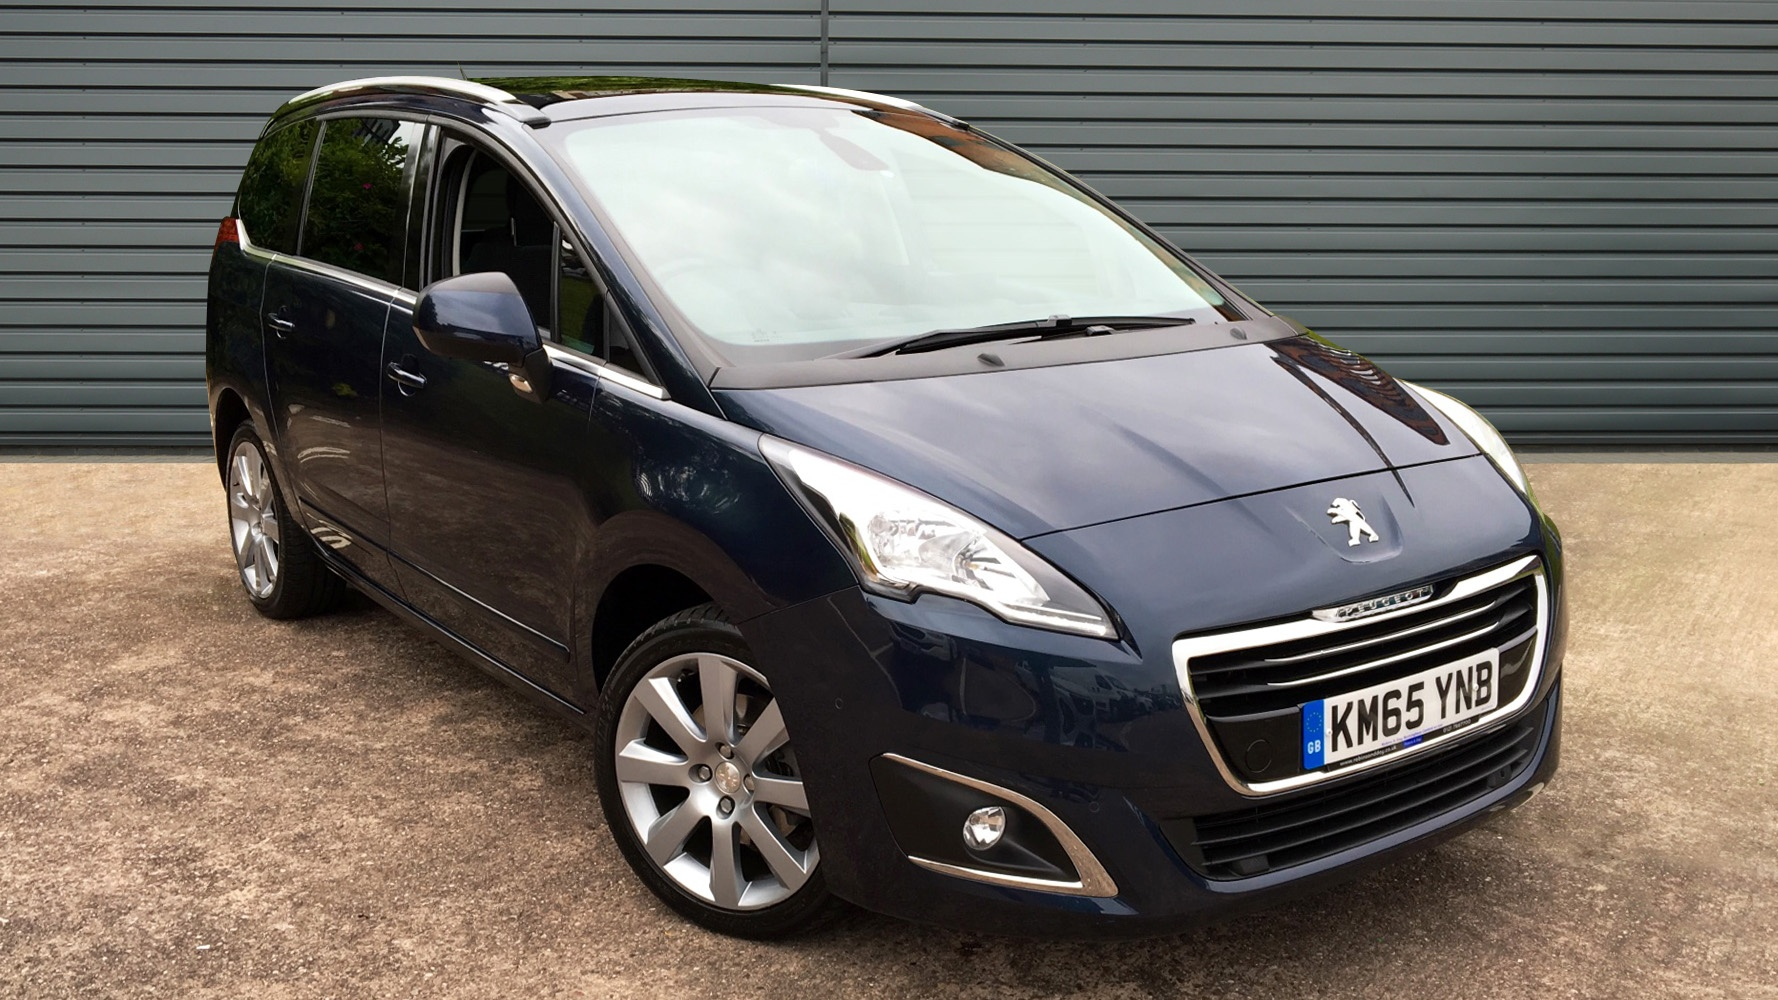 used peugeot 5008 mpv 1 6 bluehdi allure 5dr start stop 2015 km65ynb. Black Bedroom Furniture Sets. Home Design Ideas